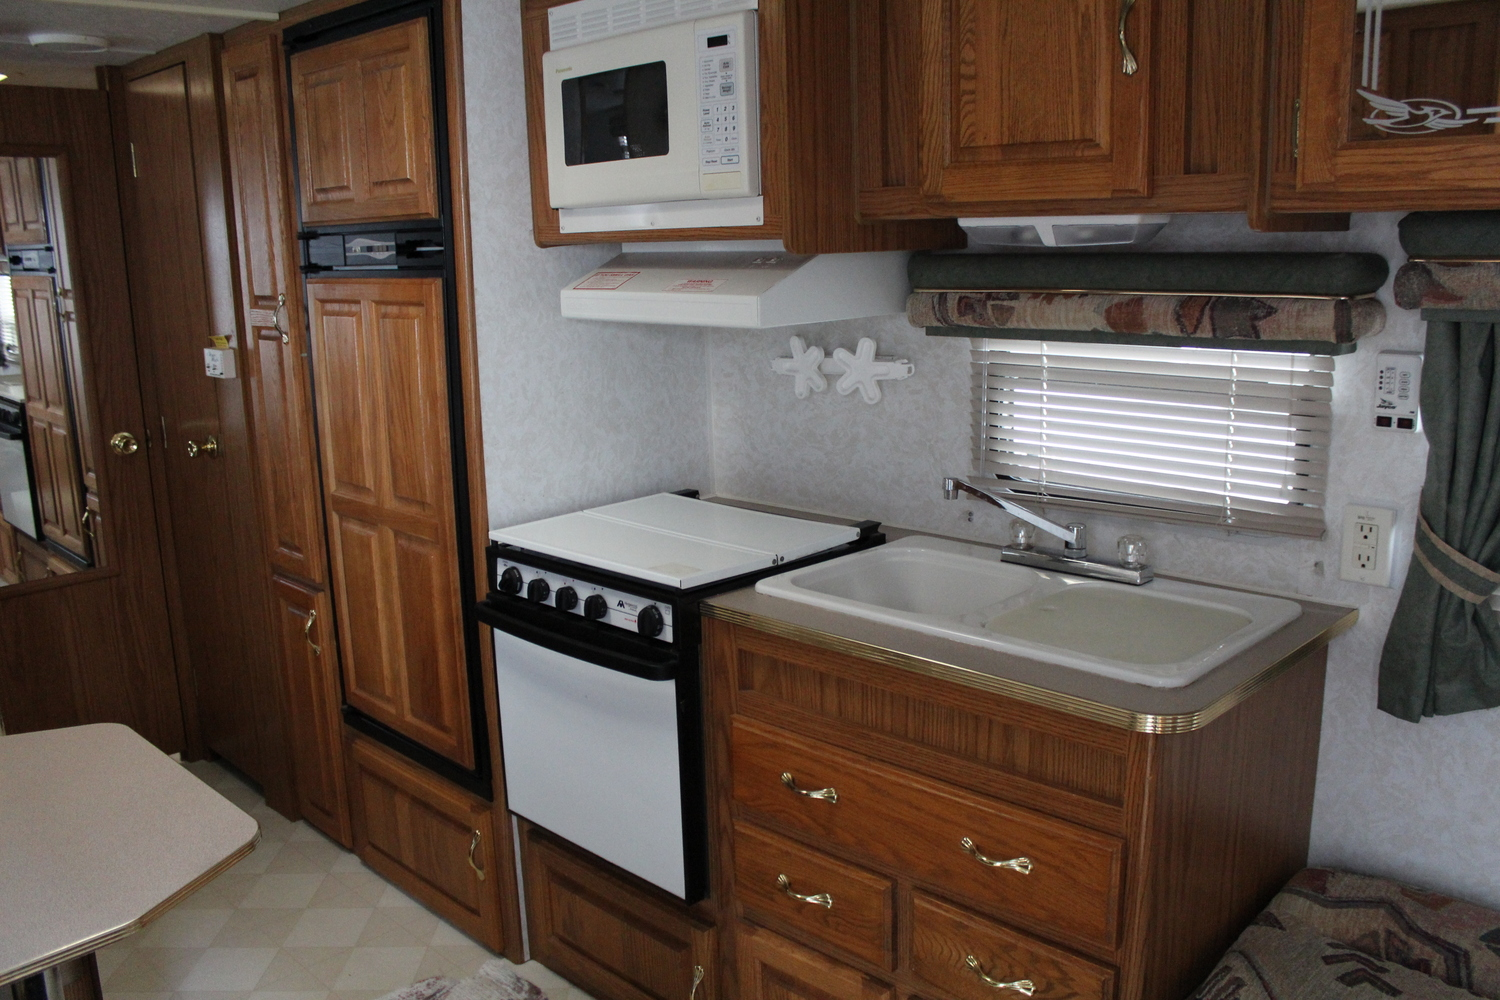 The kitchen has a decent fridge, an oven that can actually fit a chicken roaster in it (more unusual than you'd think in the small trailers) and enough storage spaces to survive. Just no counter top, unless you count the top of the stove. It will be cozy!